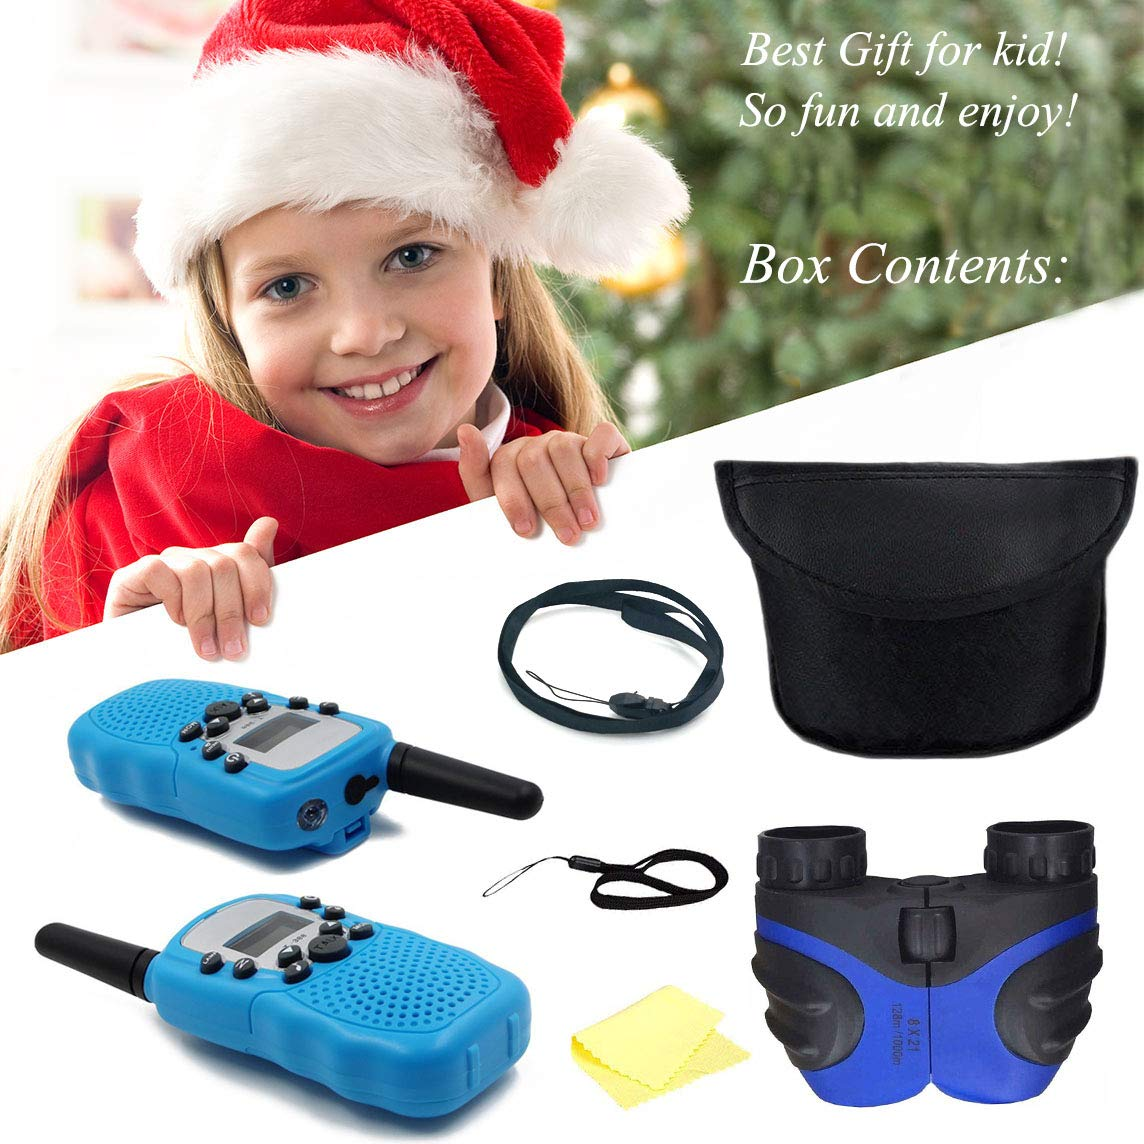 Happy Gift Fun Toys Binoculars for 3-15 Year Old Boy, Gifts for Teen Girls Boys to Hiking, 3 Miles Range Walkie Talkies for Kids Teen Boy Gifts Birthday Presents,Boys Gift Age 5,1 Set(Blue) by Happy Gift (Image #7)